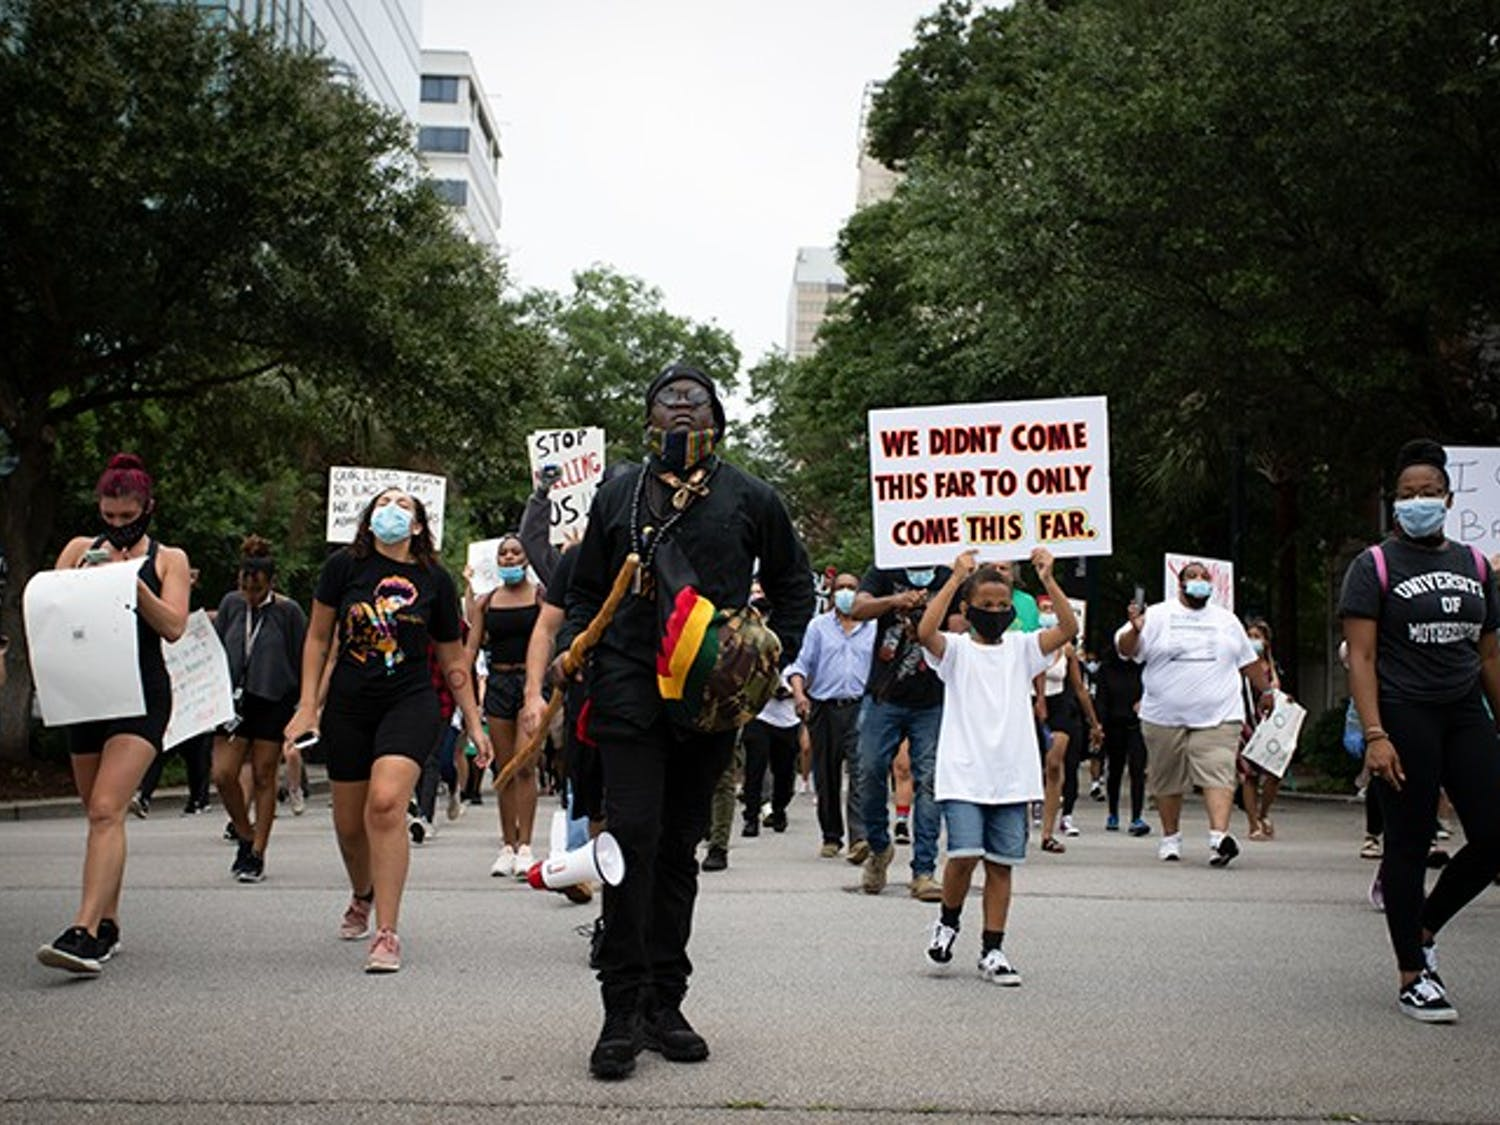 """People marching at the """"I Can't Breathe"""" protest move towards the Statehouse in Columbia on May 30."""